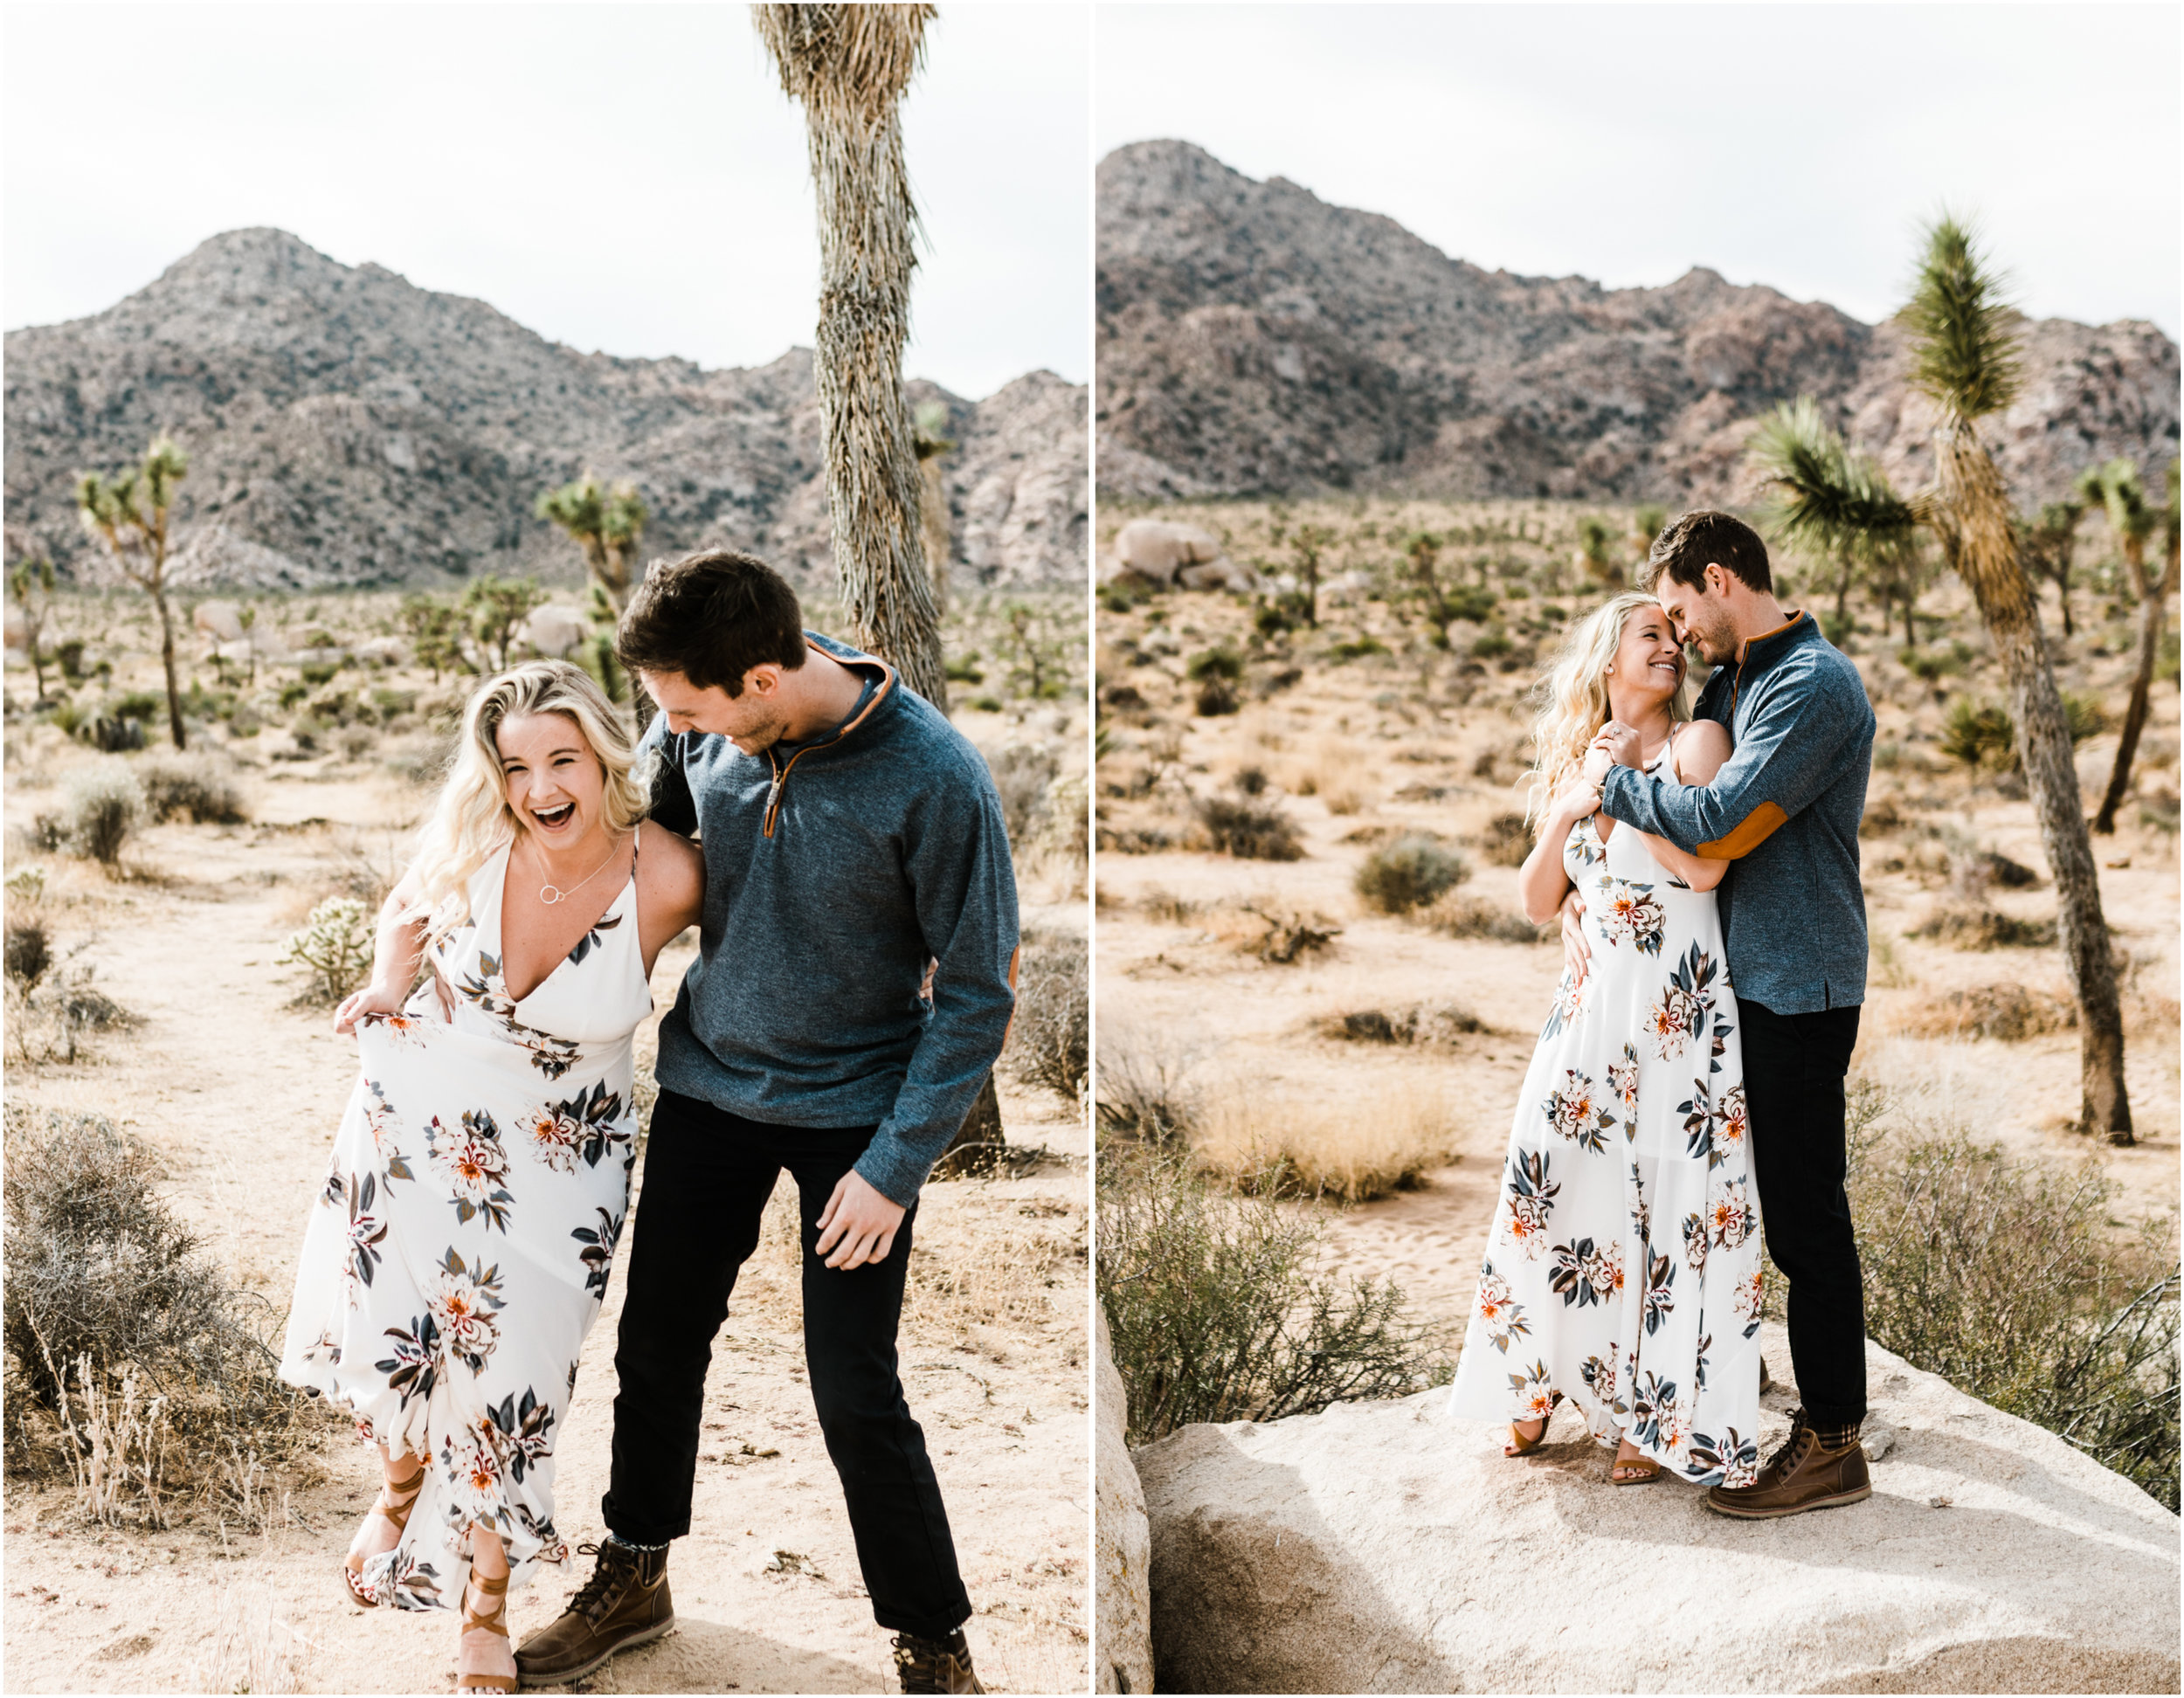 Dano&Andrew-Joshua-Tree-Engagement-Session-CRM-Media-Southern-California-Wedding-Photographer26